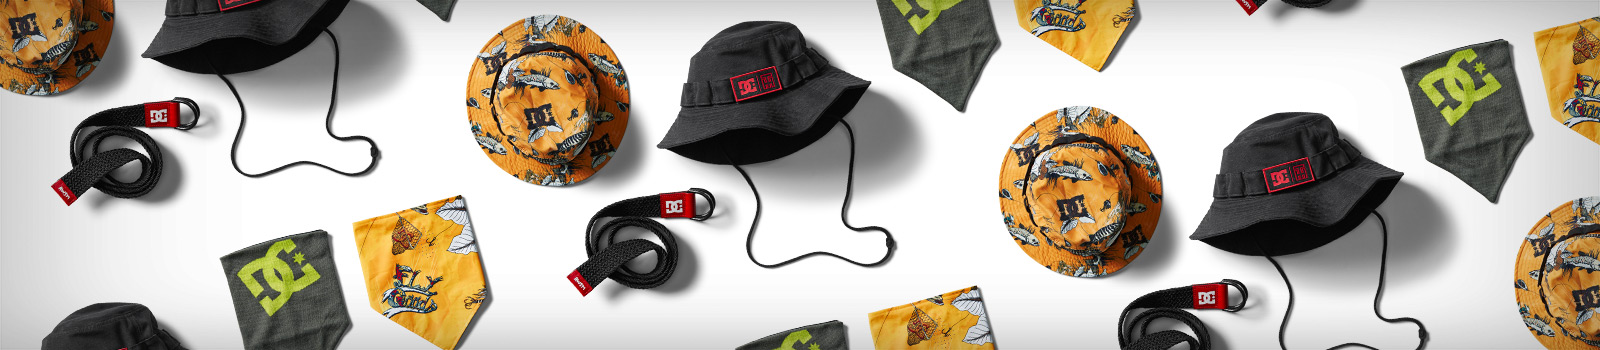 Mens Ski Accessories by DC Shoes